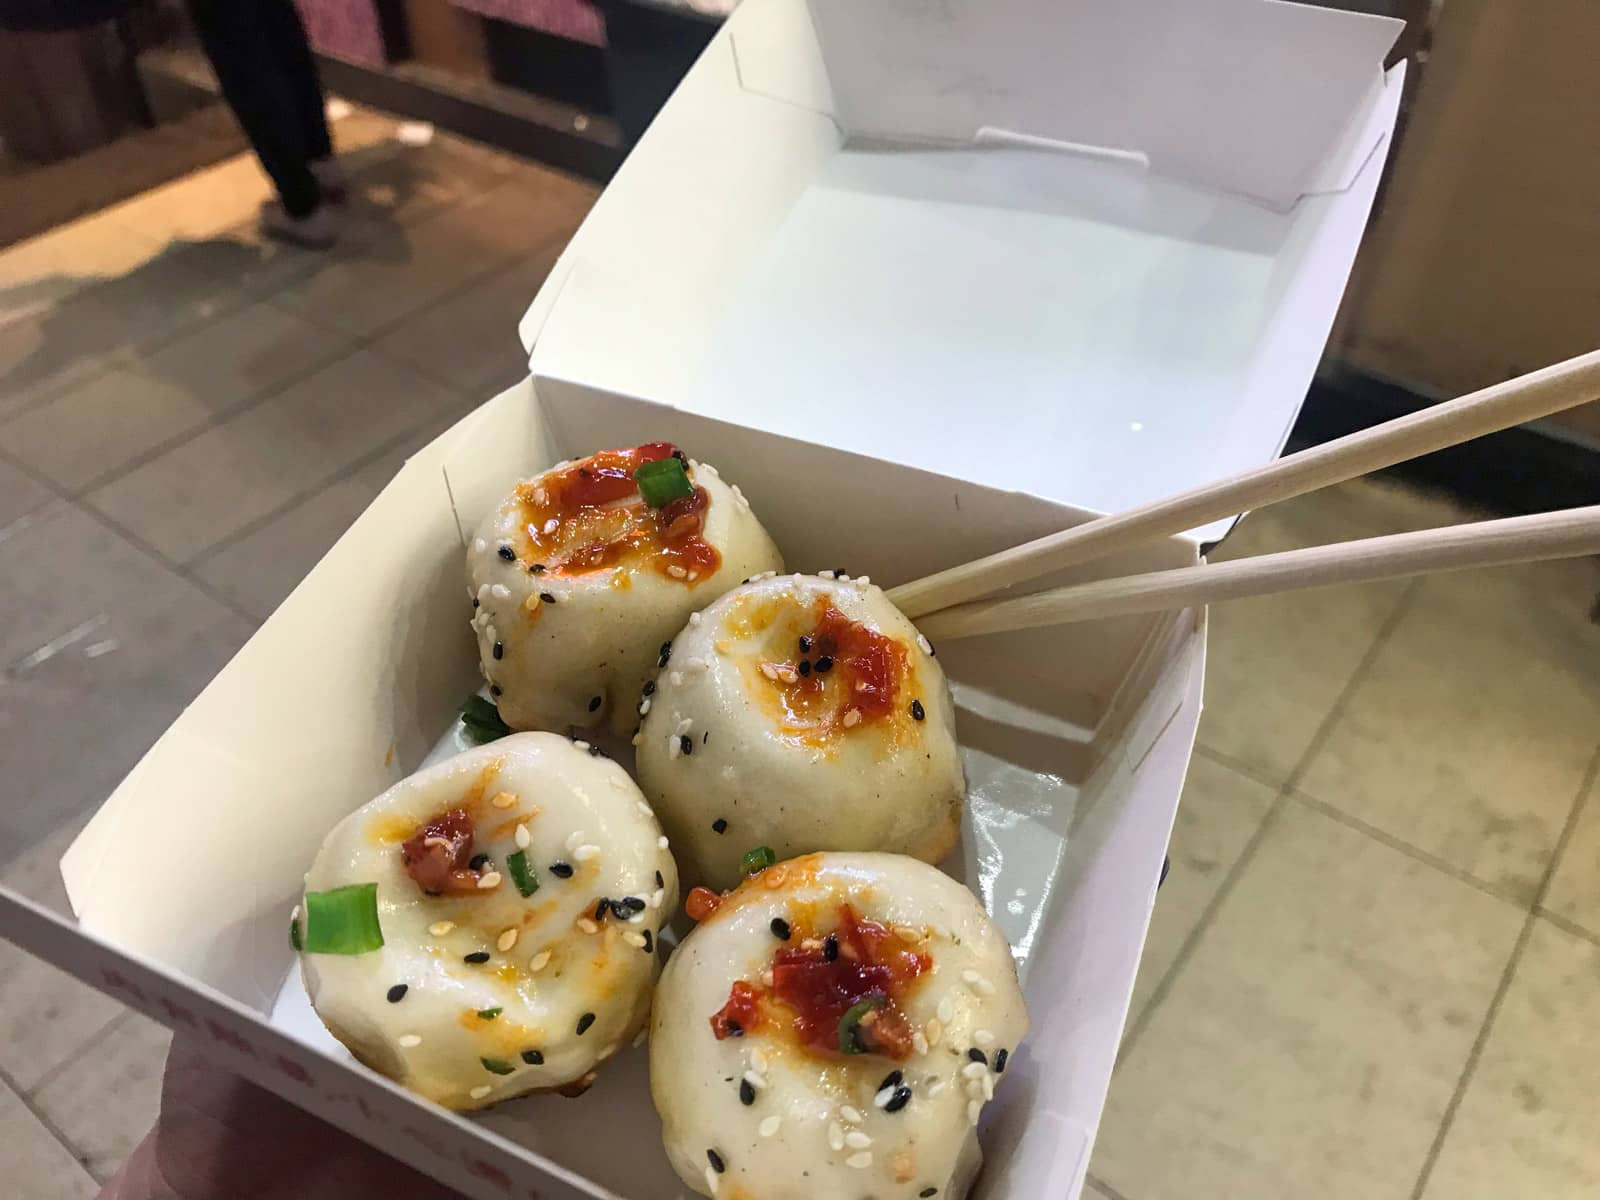 A cardboard box of four pan-fried pork dumplings seasoned with sauce. Wooden disposable chopsticks stick out the side of the box